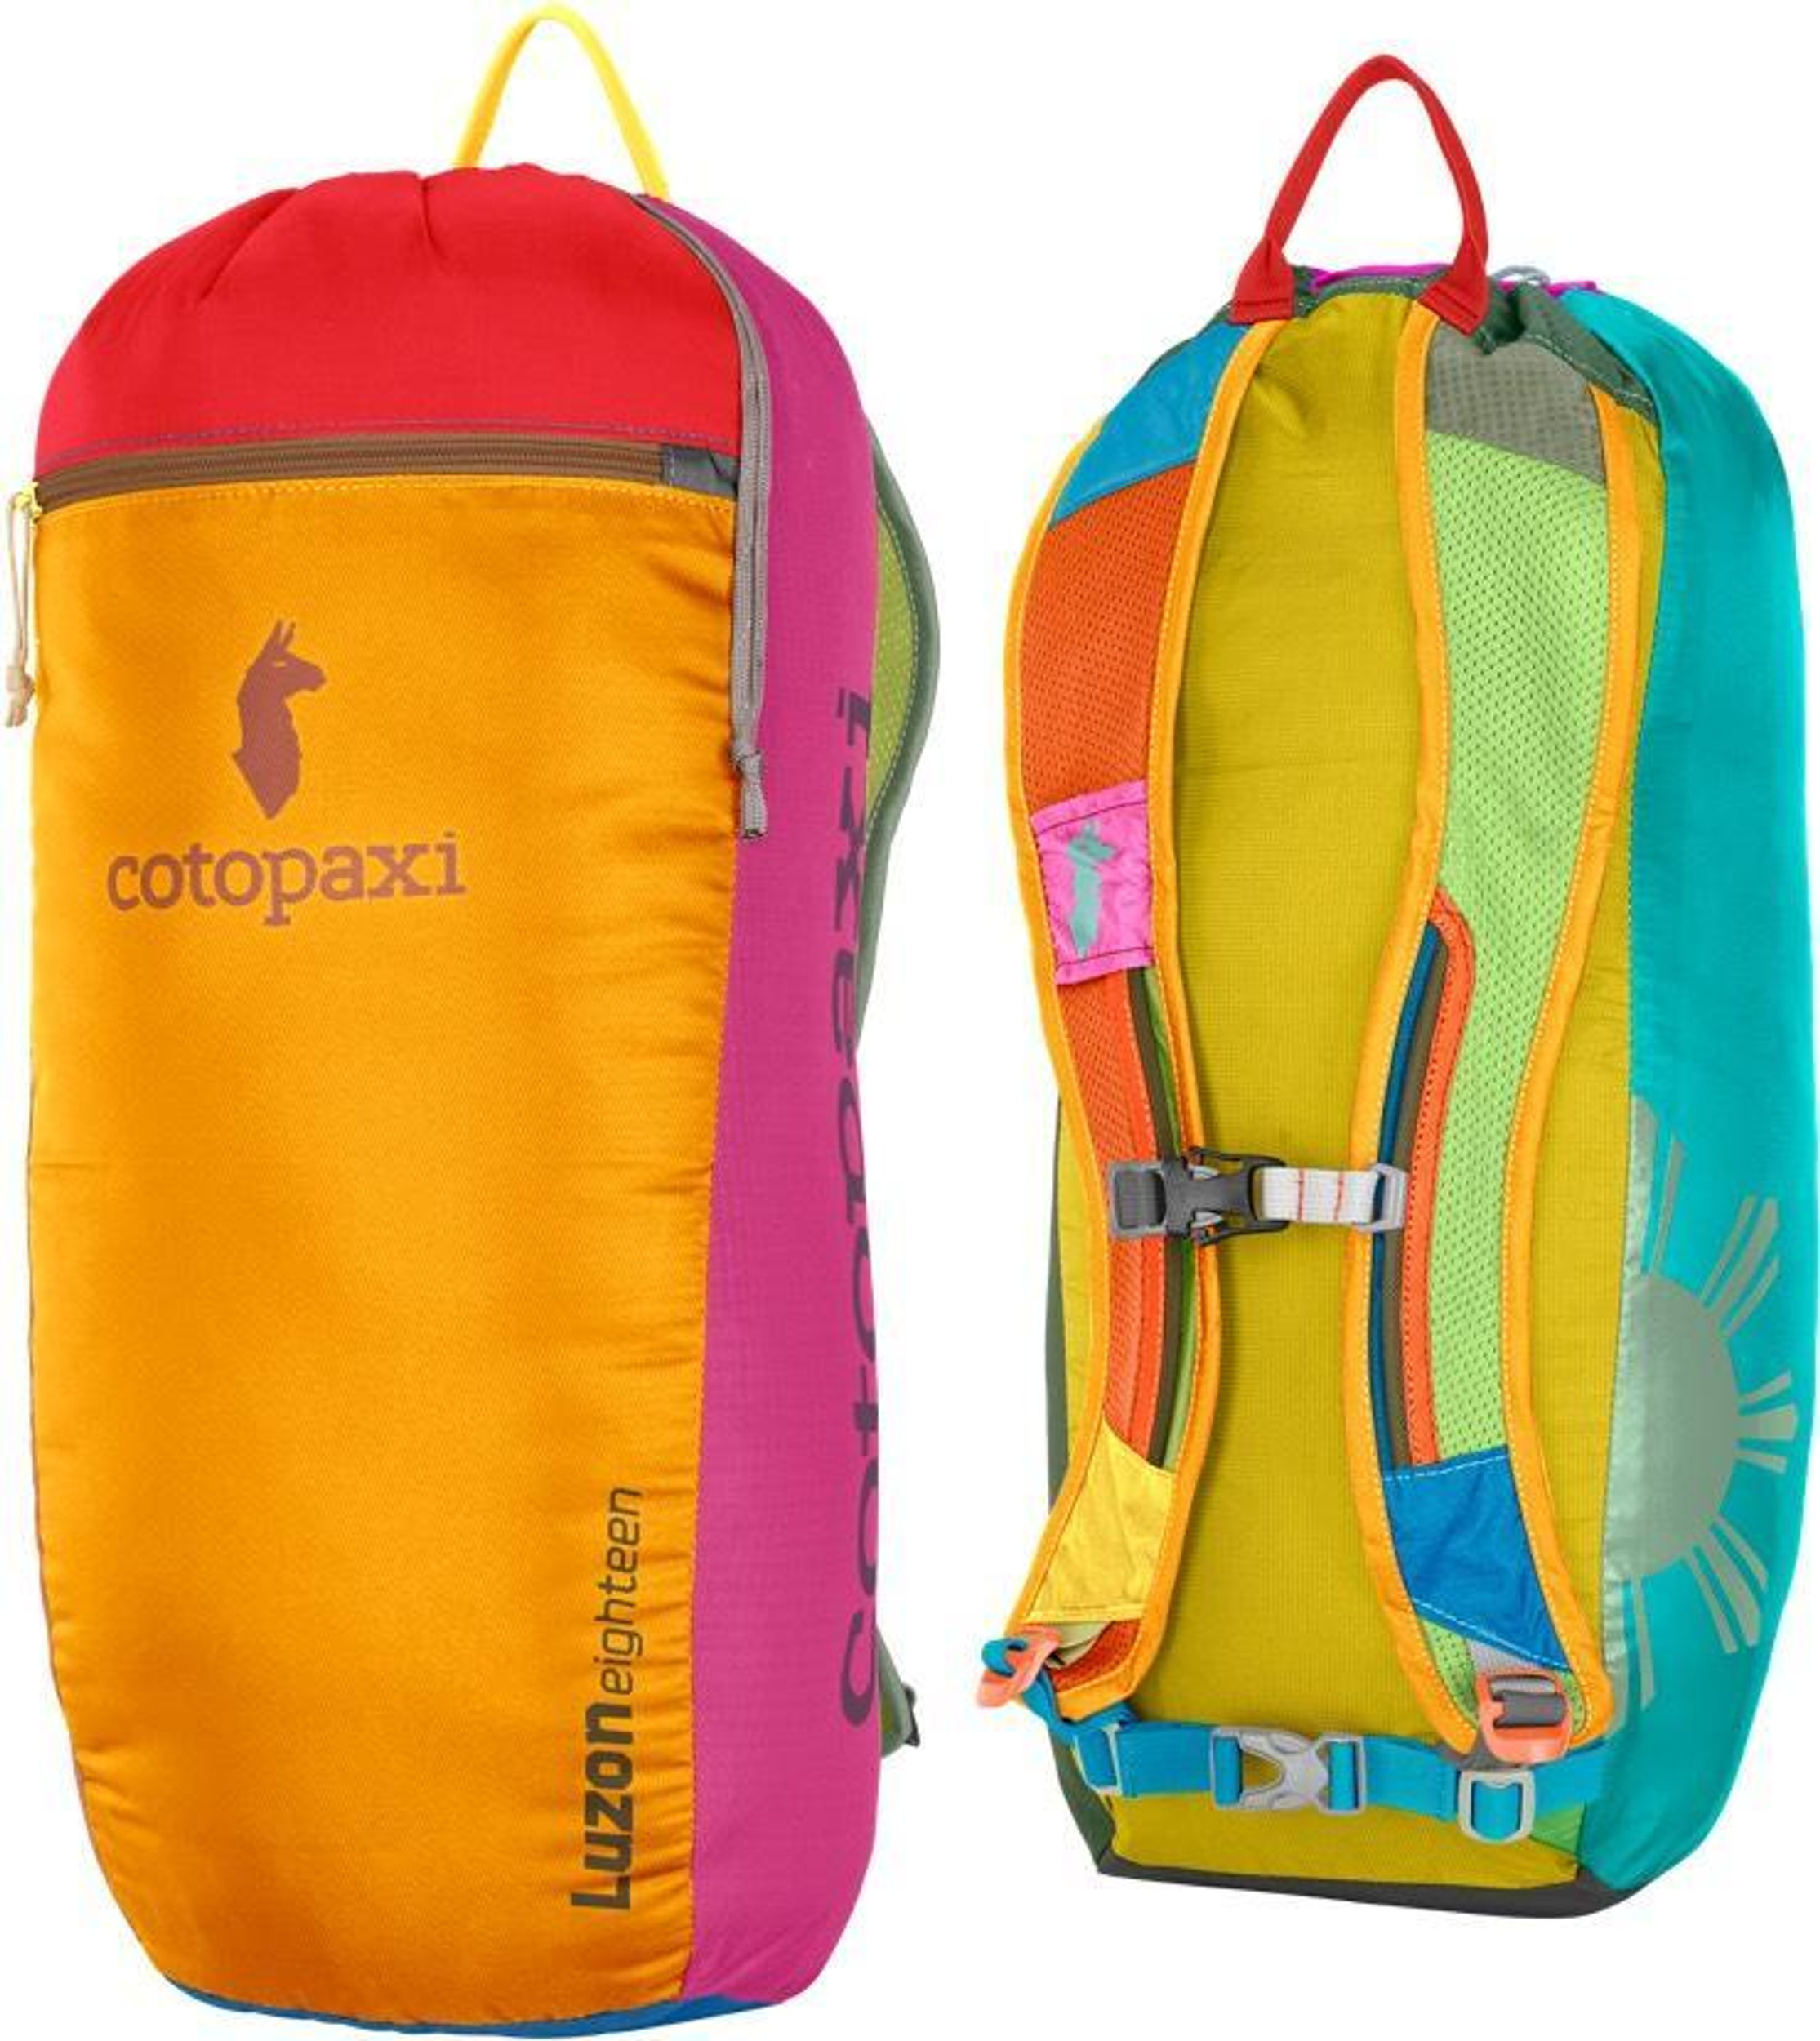 2021 Cotopaxi Luzon 18 Liter Backpack